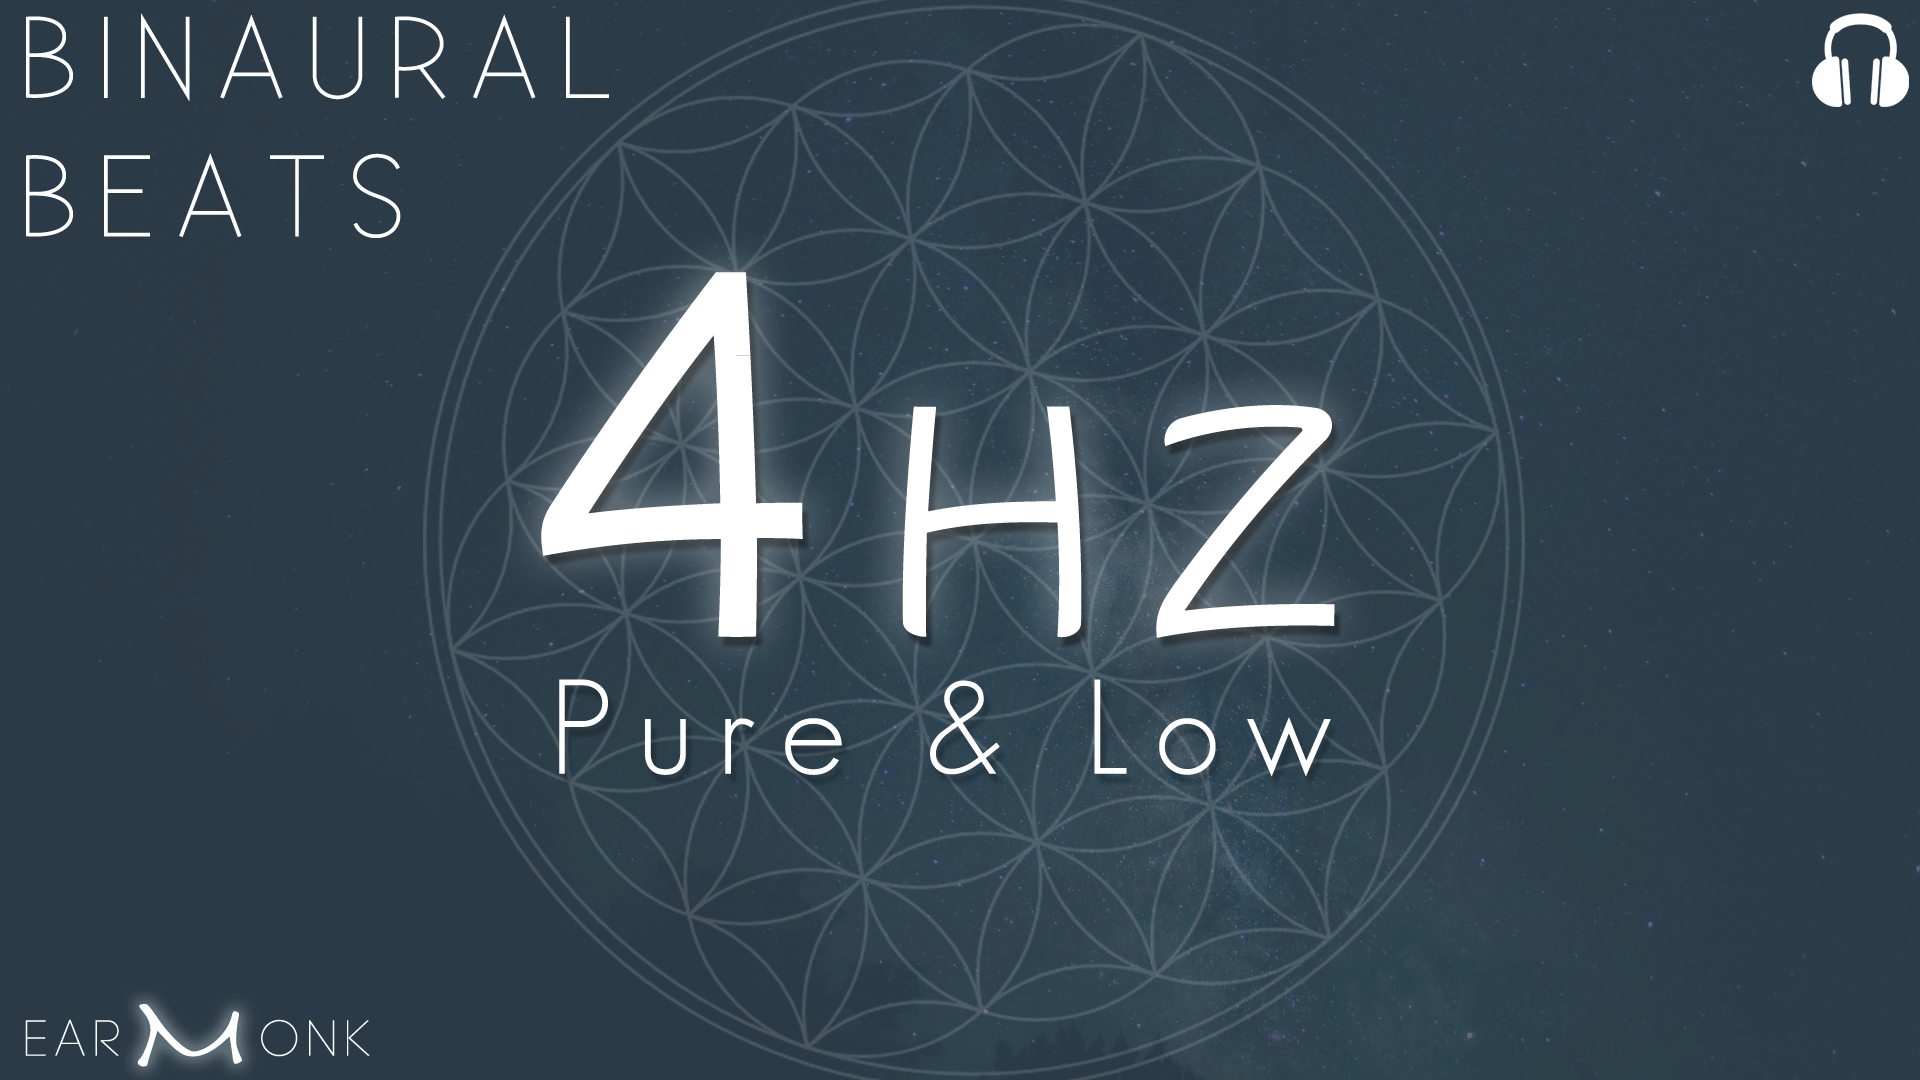 4Hz Theta Binaural Beats Low Frequency